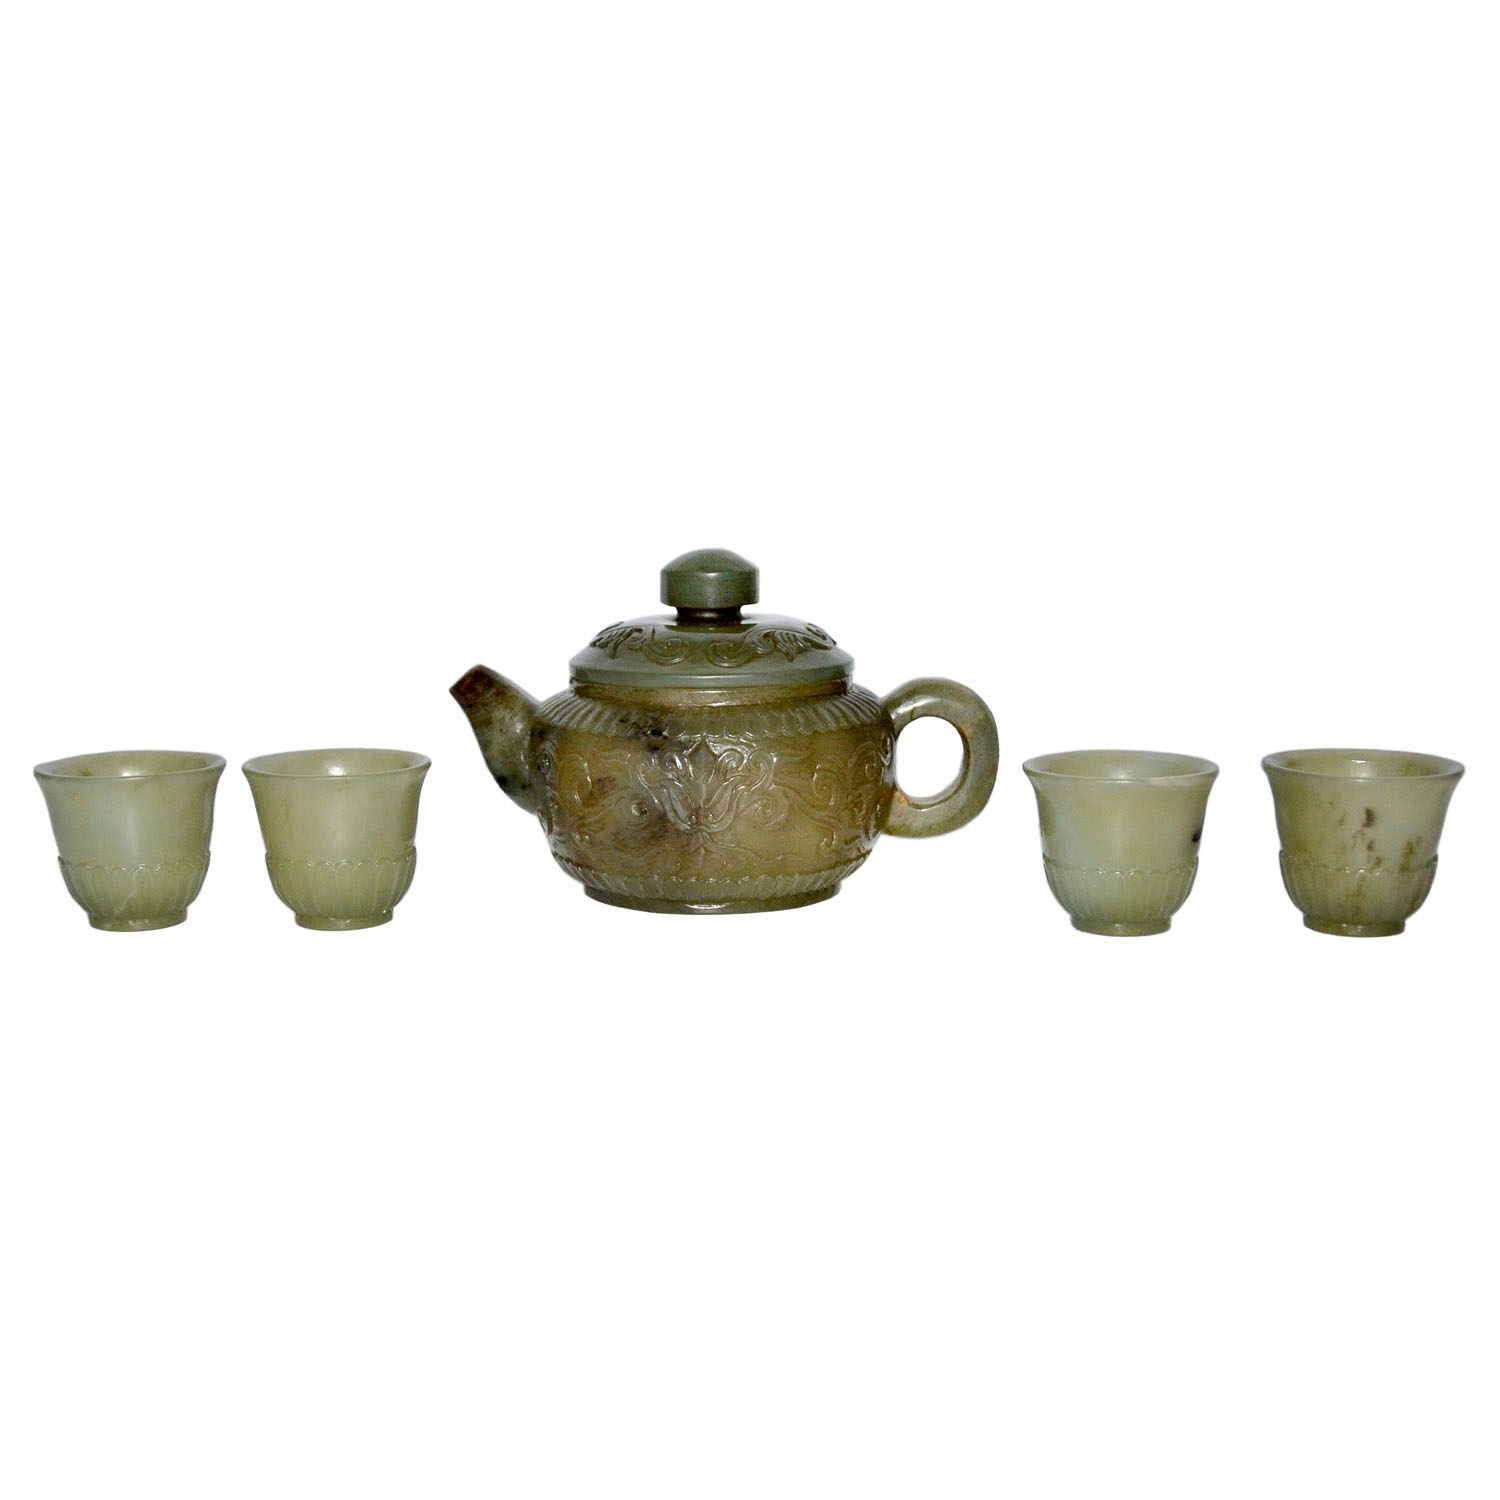 Lot 44 - 玉浮雕牡丹壺四酒杯一套五件 A Set of Jade Carved Peony-Lappet Wine Pot with Four Cups  Height: 3 in (7.6 cm), 1¼